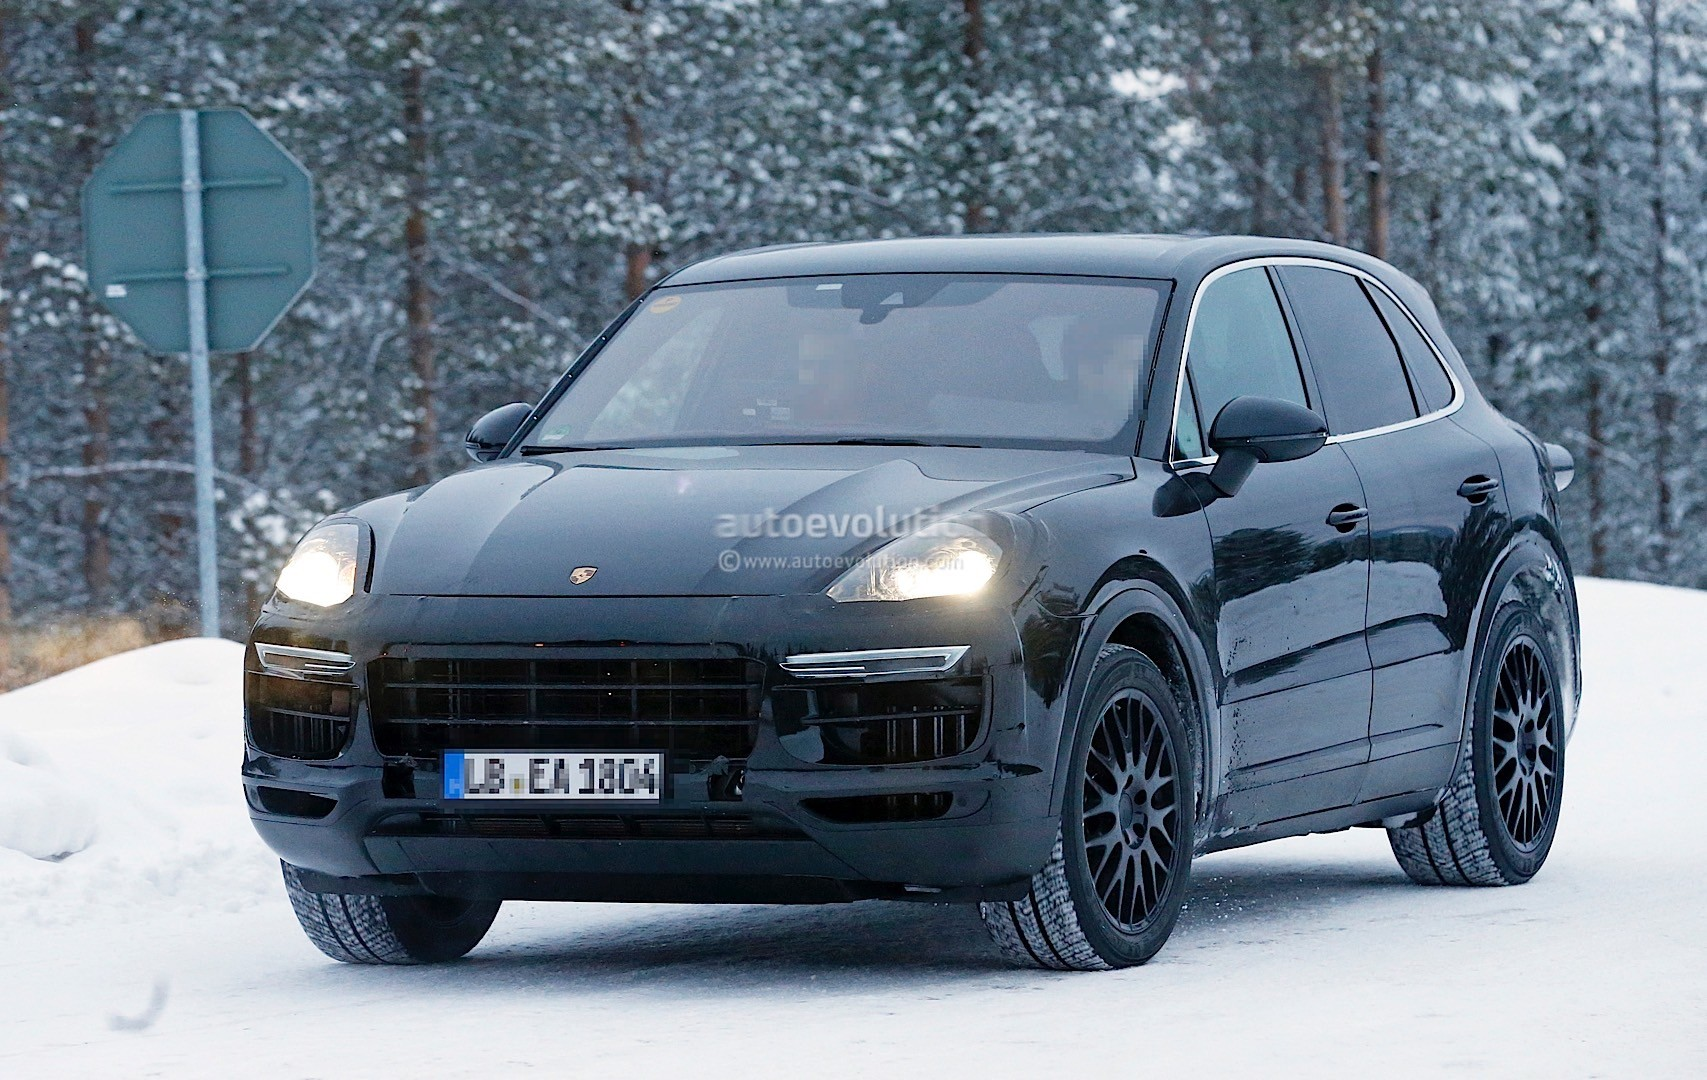 2018 porsche cayenne spied once more enjoying the last bits of winter autoevolution. Black Bedroom Furniture Sets. Home Design Ideas